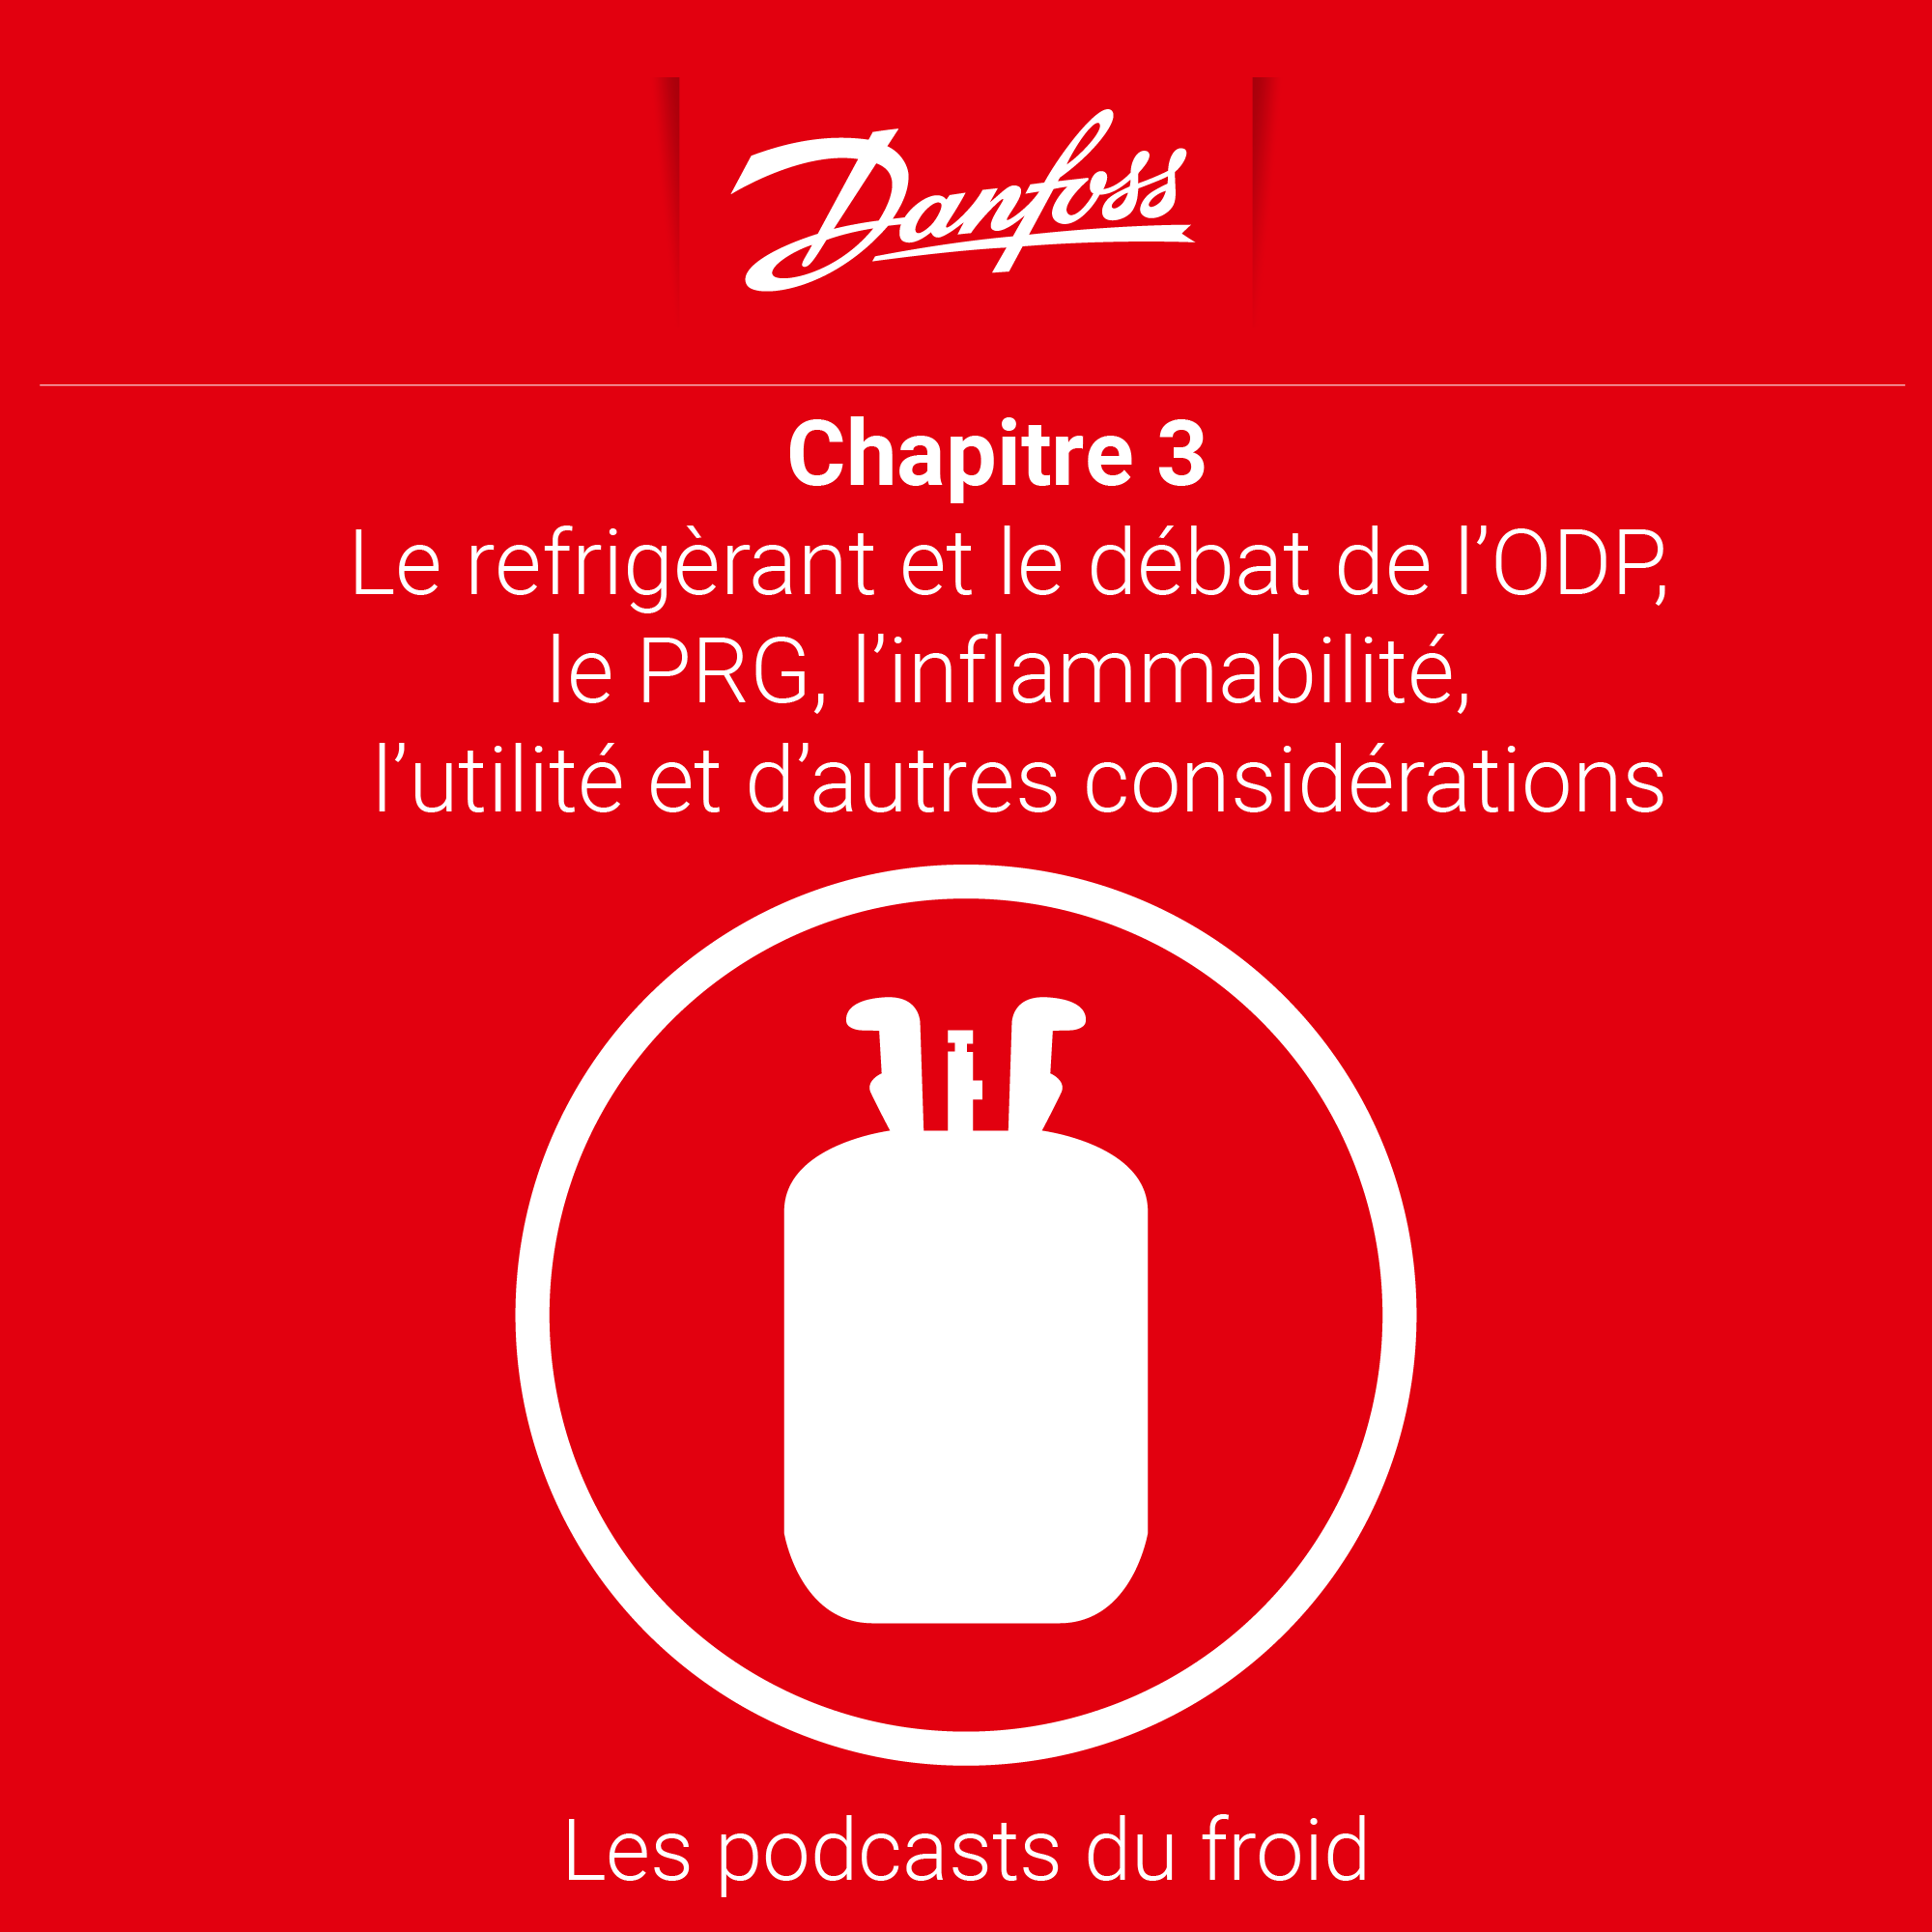 Artwork for podcast Les podcasts du Froid